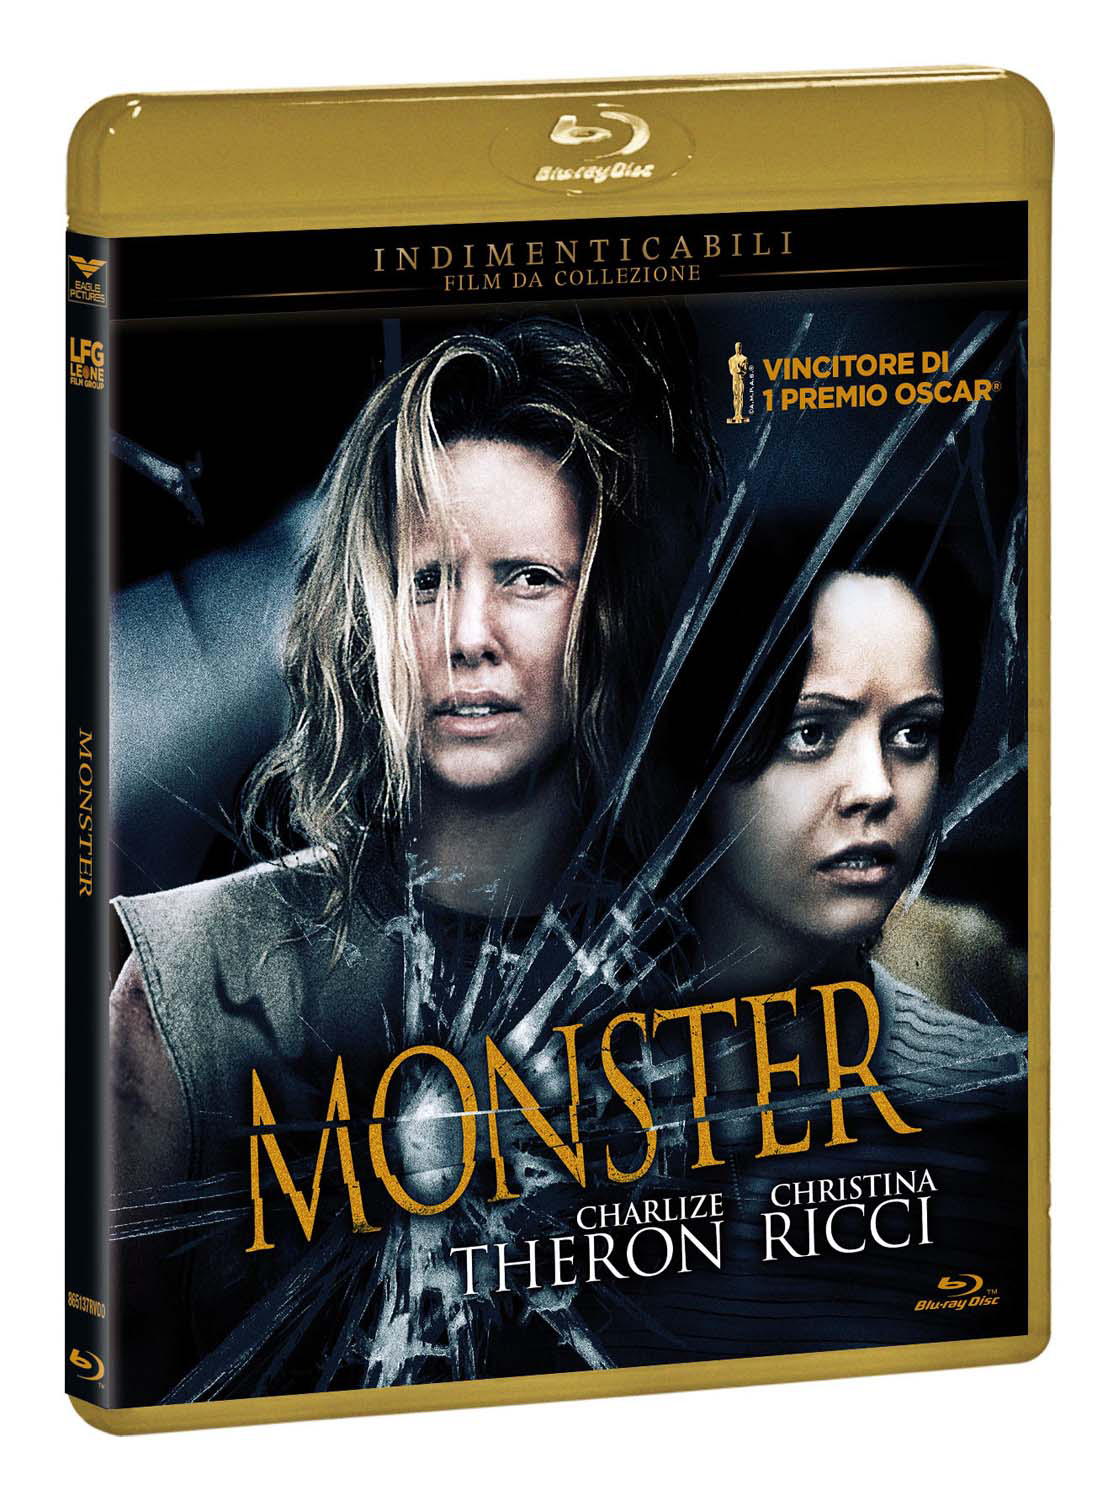 MONSTER (INDIMENTICABILI) - BLU RAY